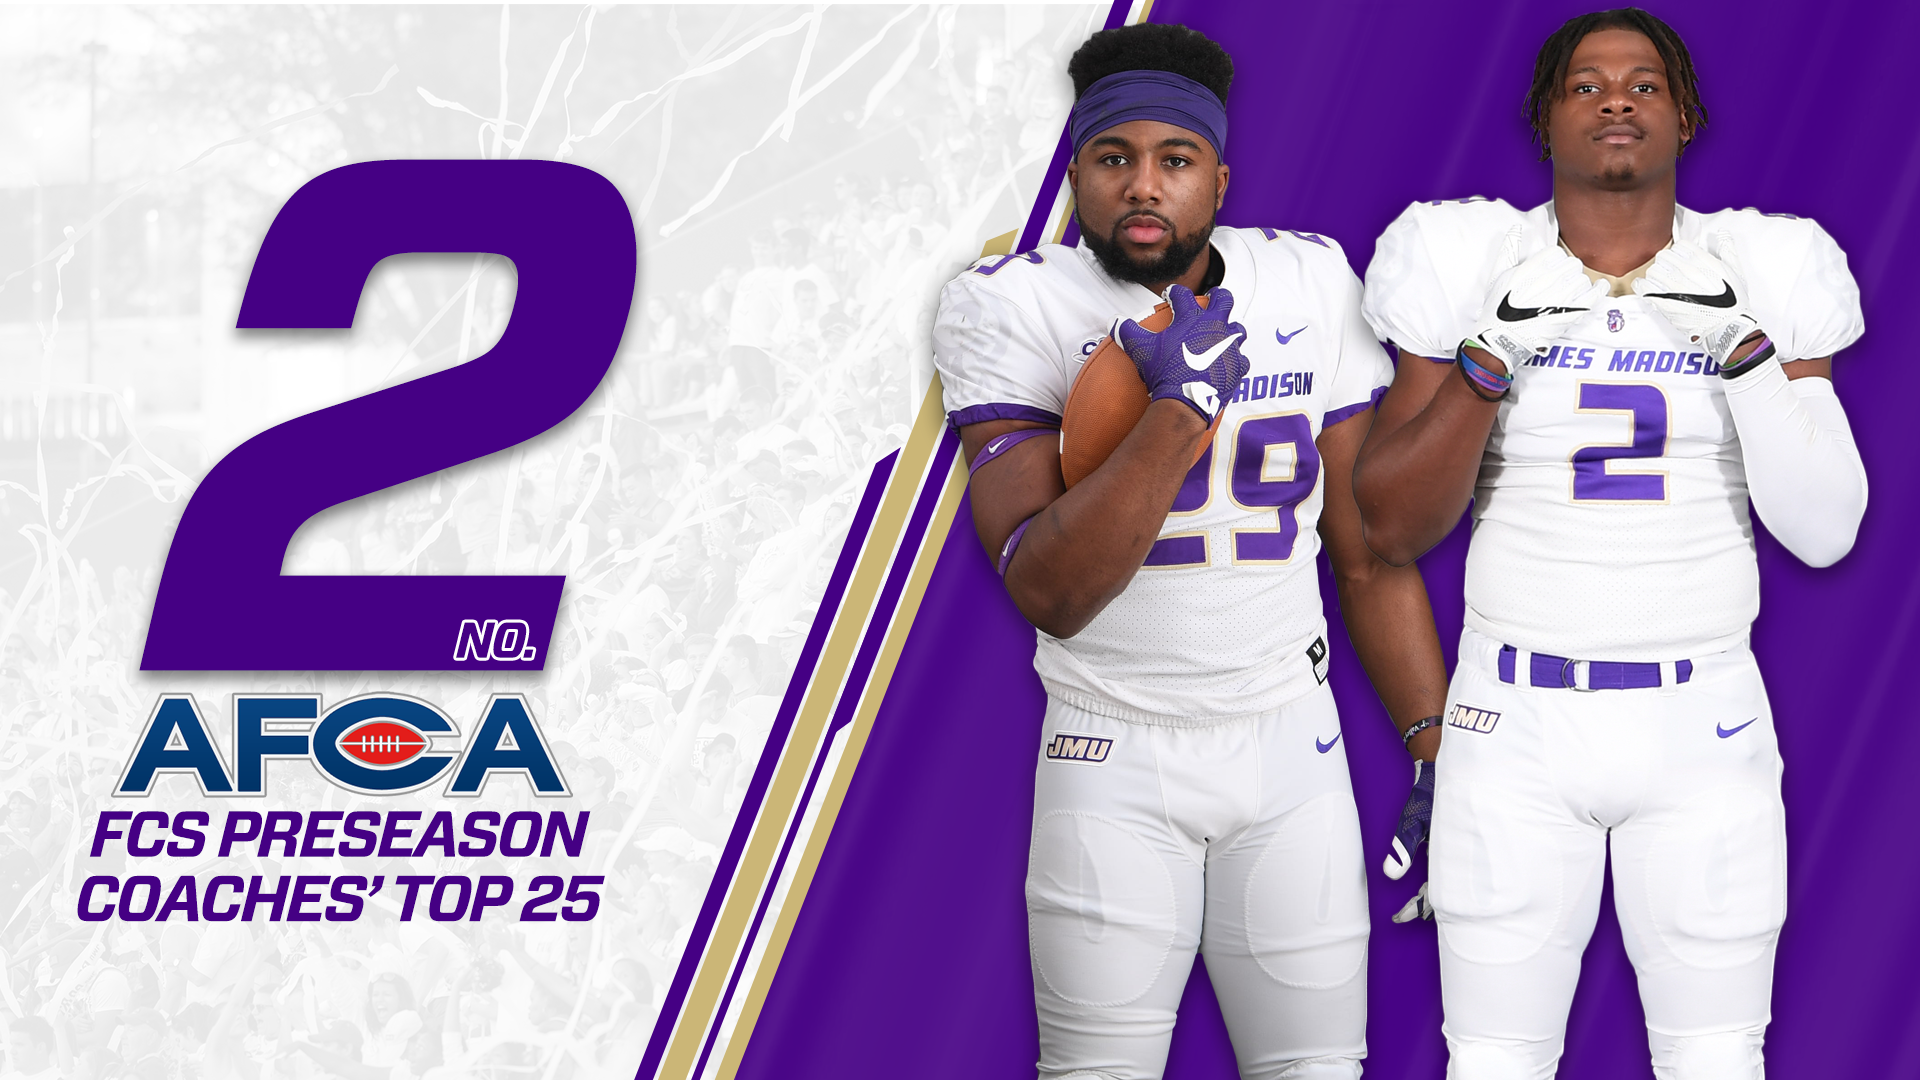 Football: Dukes Rank Second in First AFCA Coaches' Top 25